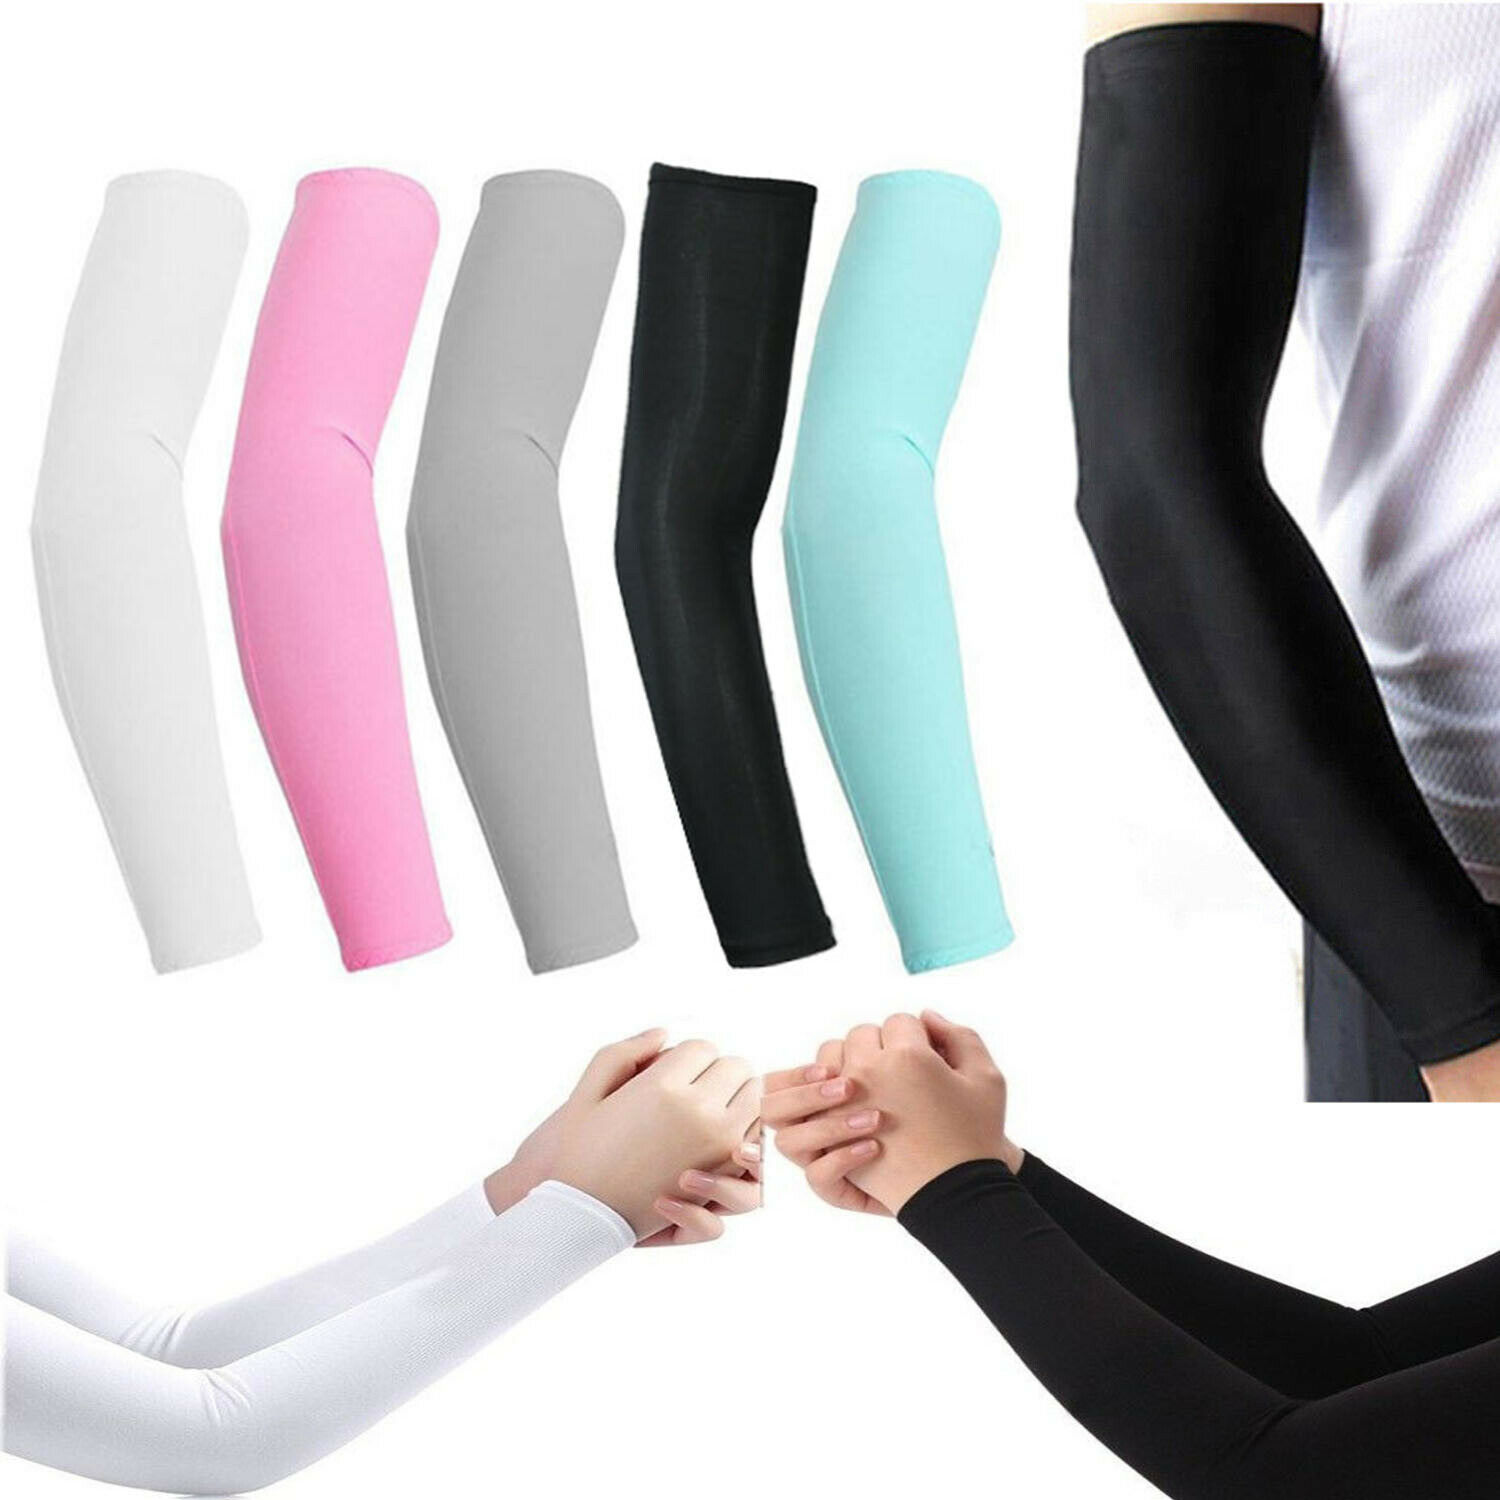 Running Arm Sleeves Cover Sun Protection Climbing Comfortable Cooling J4Y5